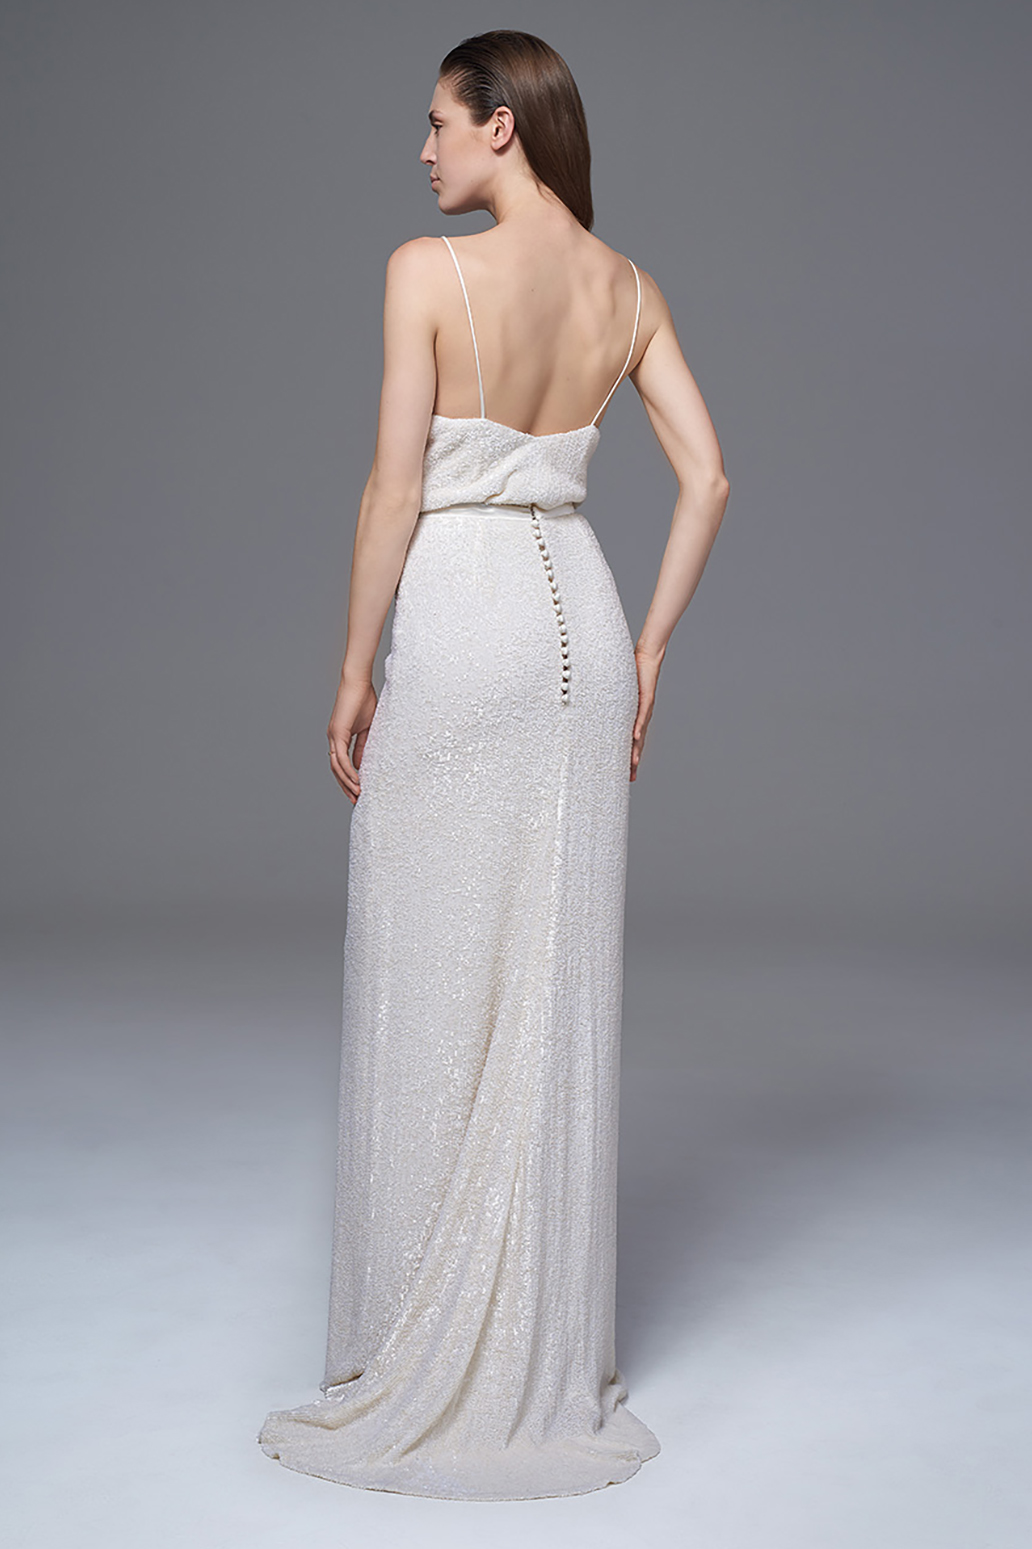 436c044d15b9 THE CELINE IVORY SEQUINNED CAMISOLE AND SKIRT TWO PIECE BRIDAL WEDDING  DRESS BY HALFPENNY LONDON